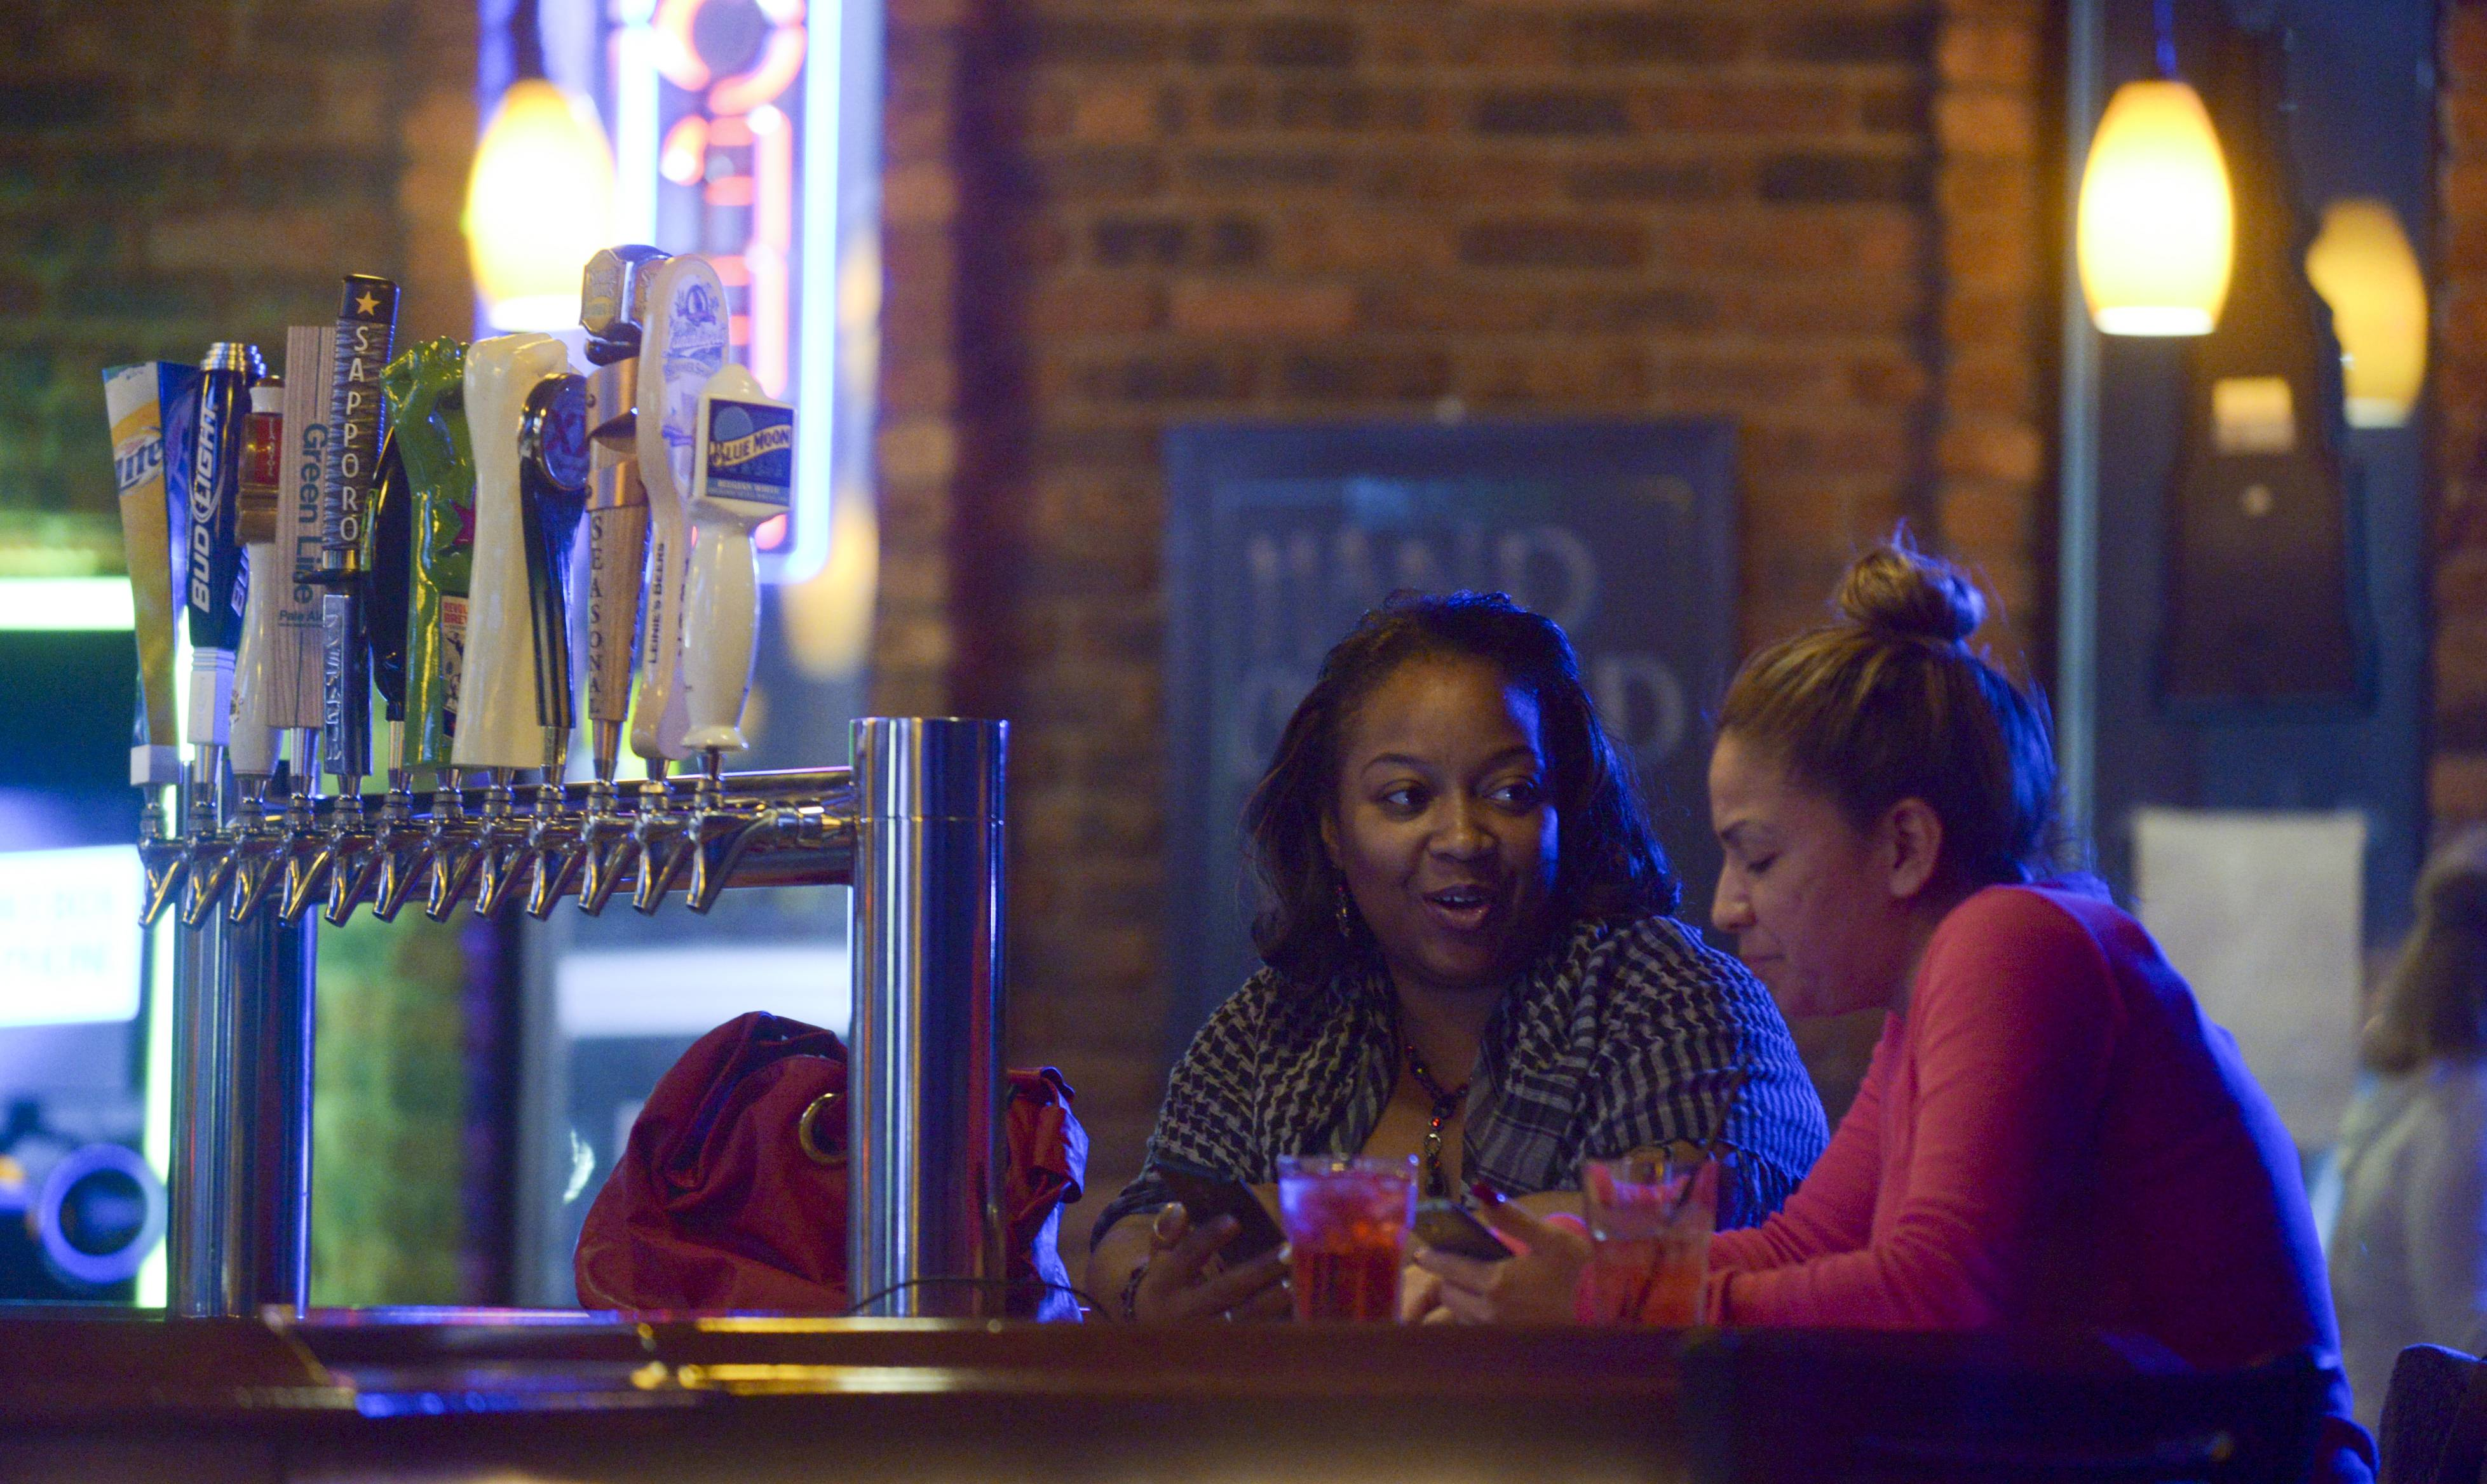 Shalyn Walker and Christina Gonzales, both of Aurora, talk over drinks at Black Door Pub in Aurora.